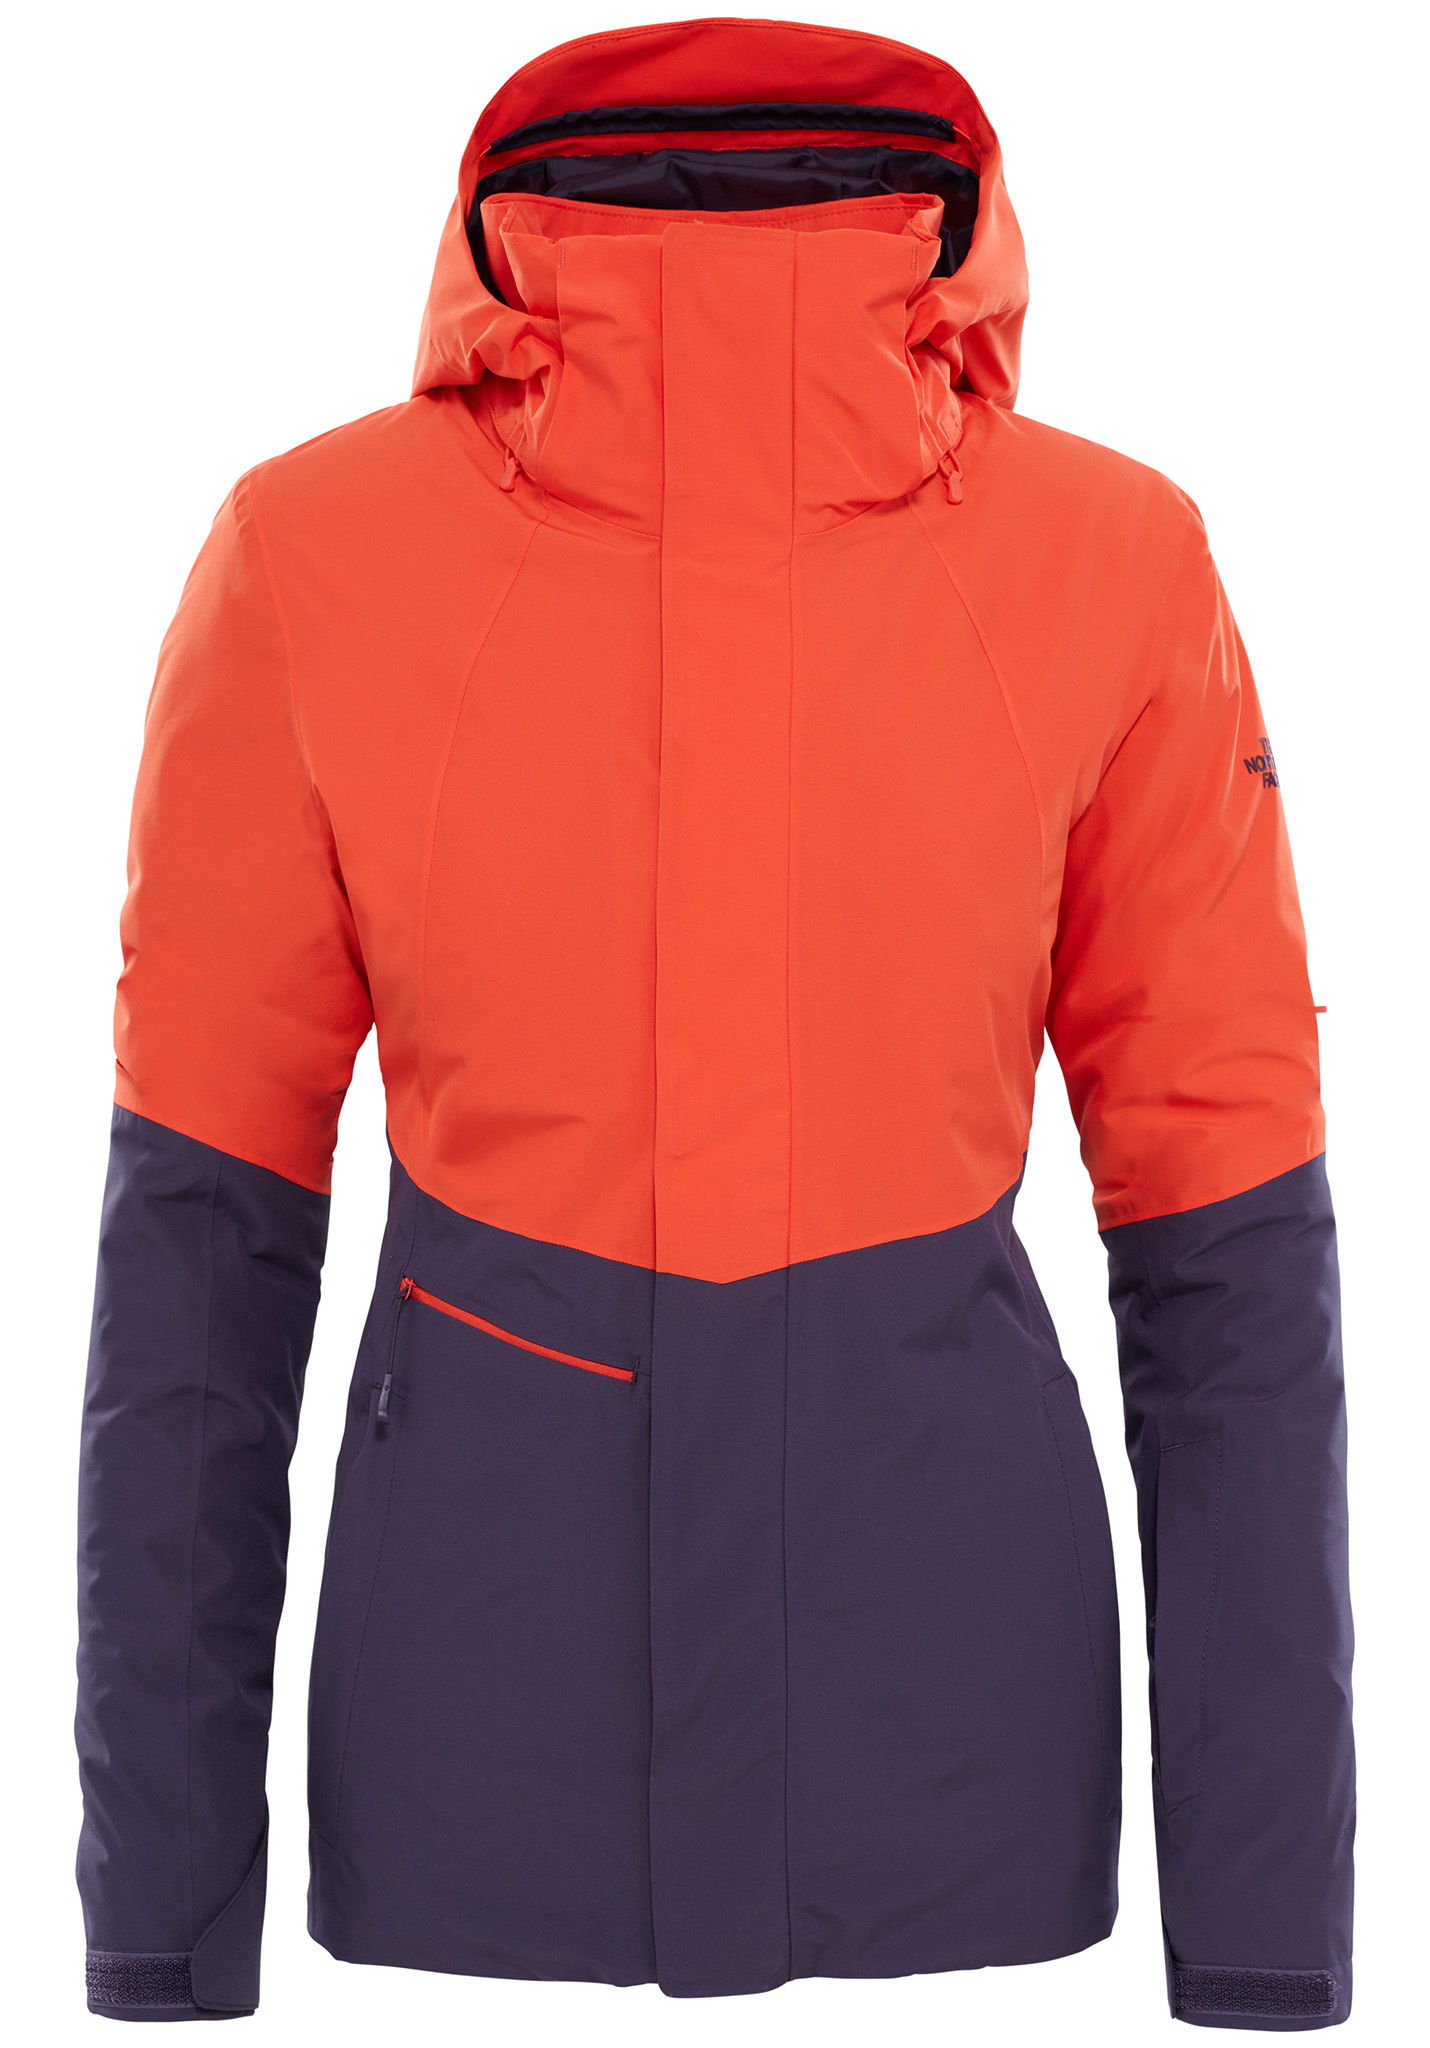 40f4d6ea69 THE NORTH FACE Garner Triclimate - Veste de randonnée pour Femme - Rouge -  Planet Sports